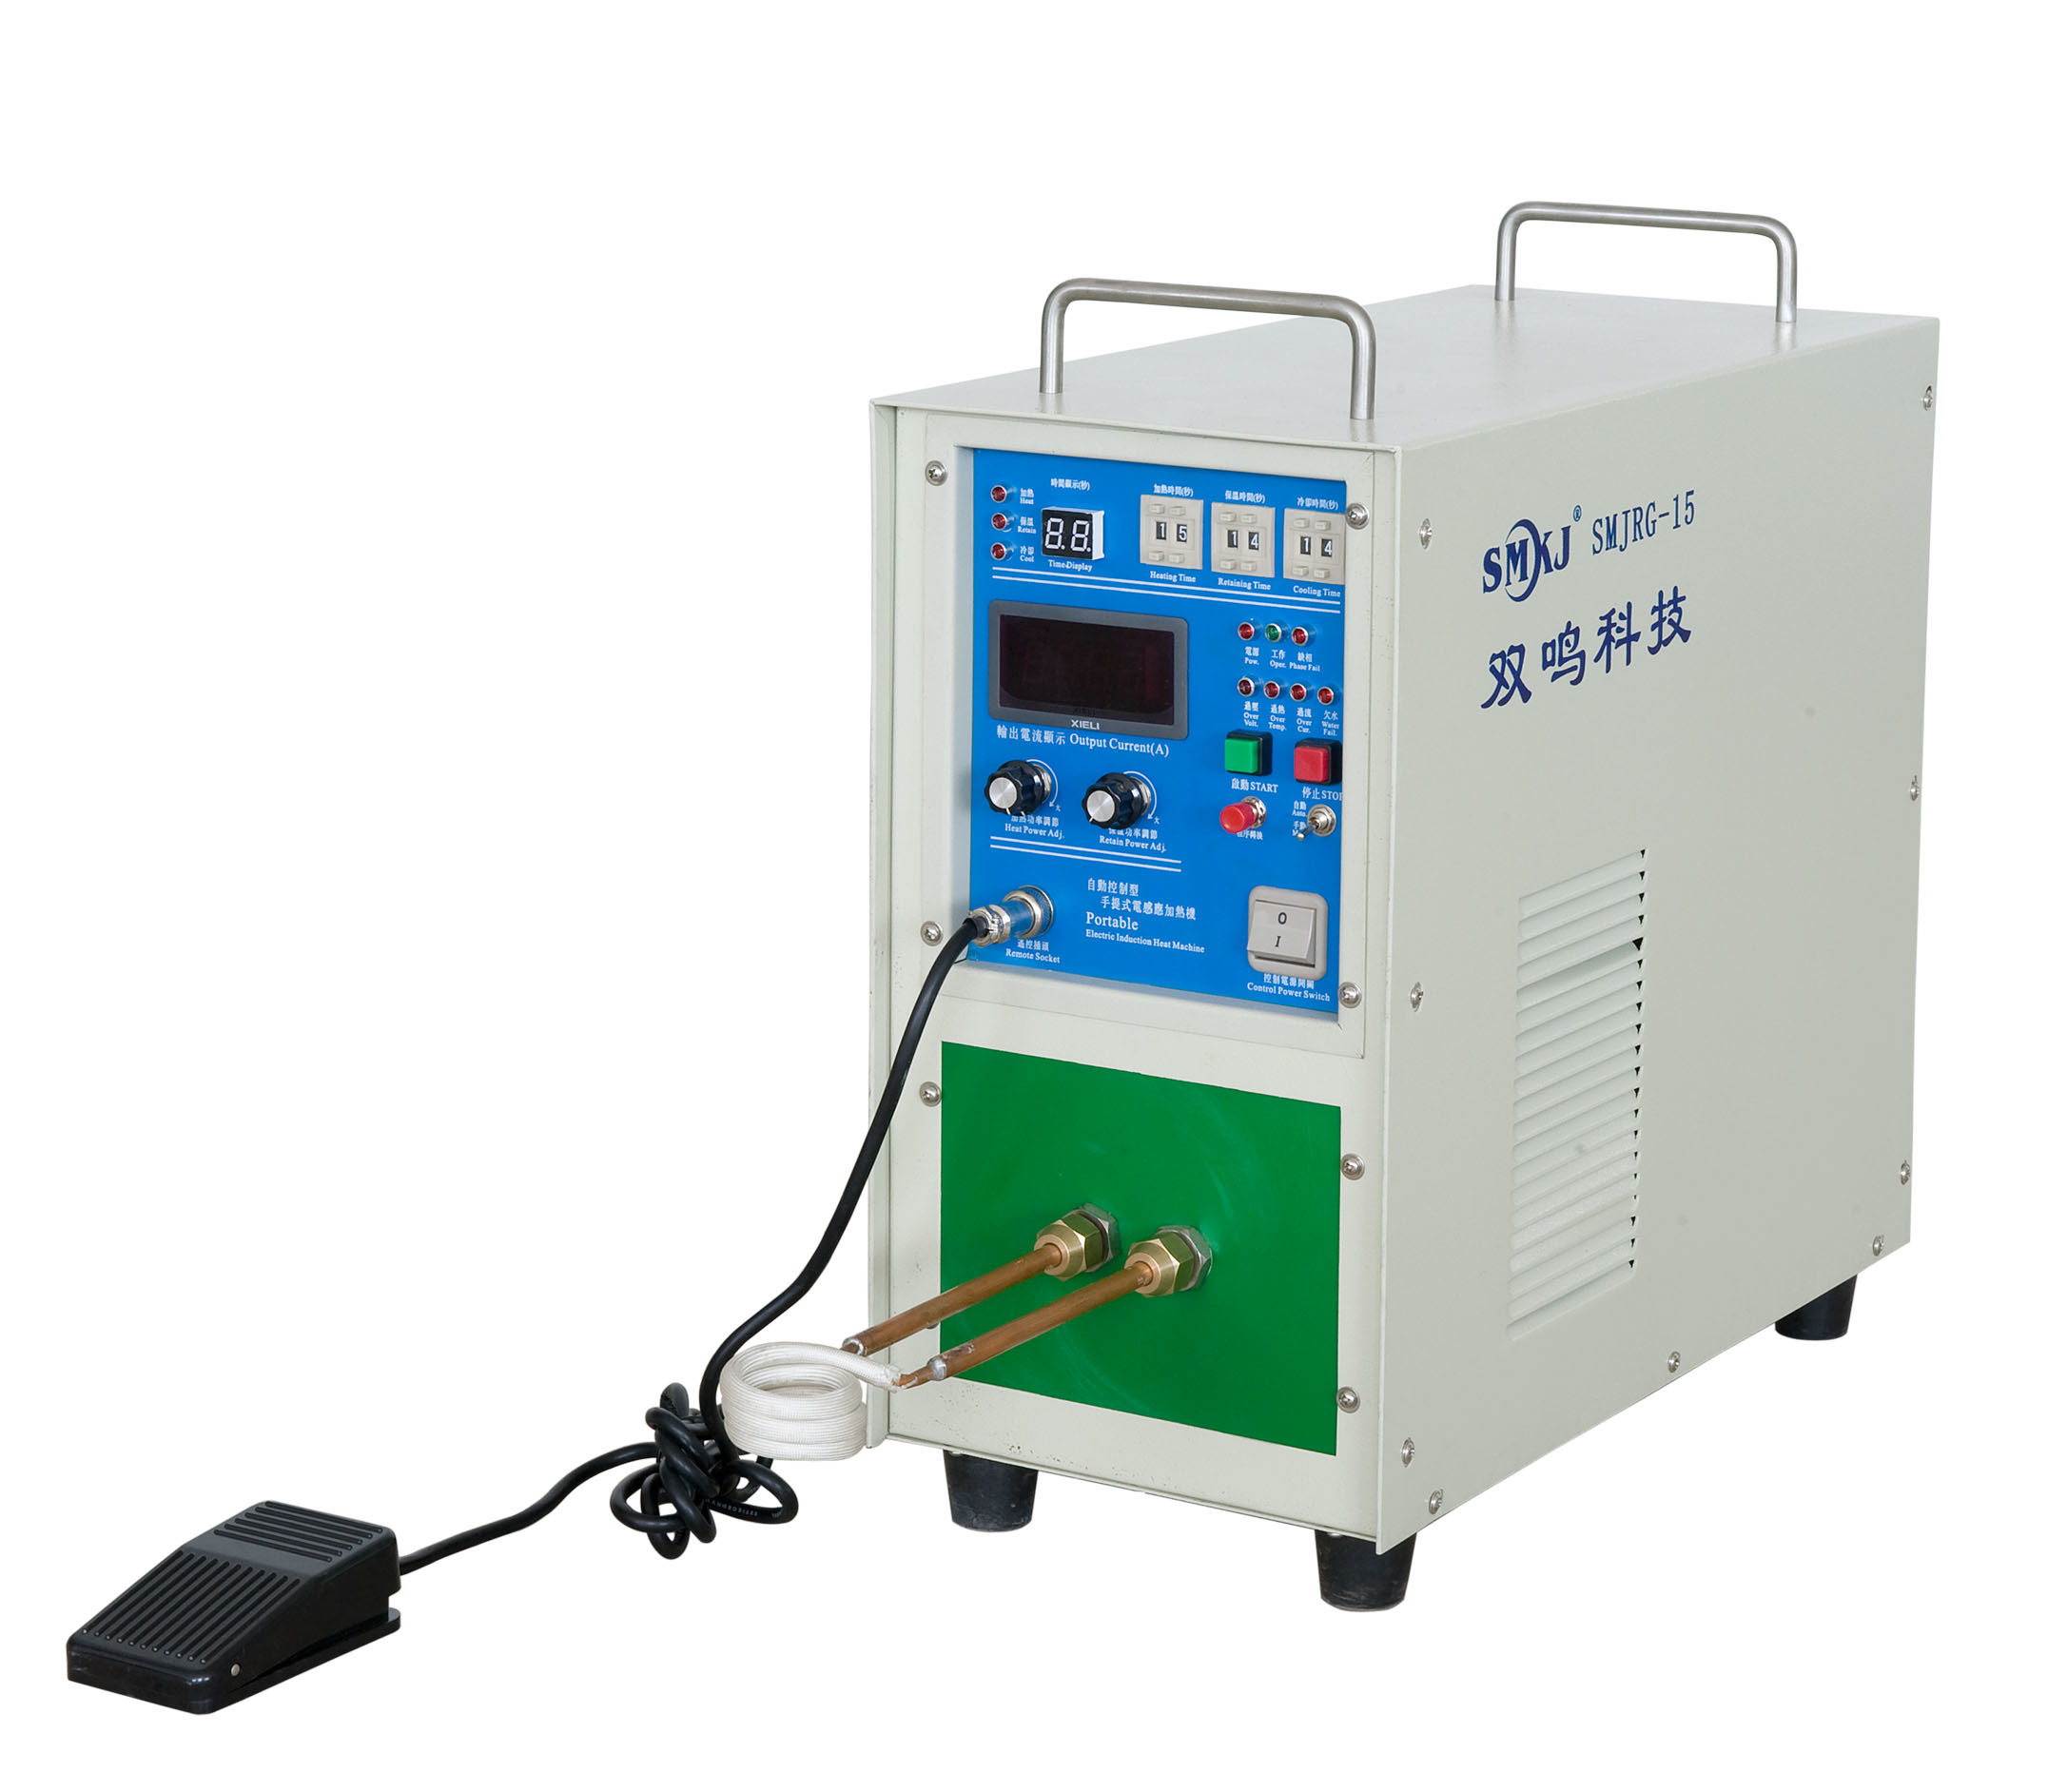 China High Frequency Induction Heating Machine Smjrg 15 15kw 30 80khz All Solid State Heater Melting Furnace Brazing